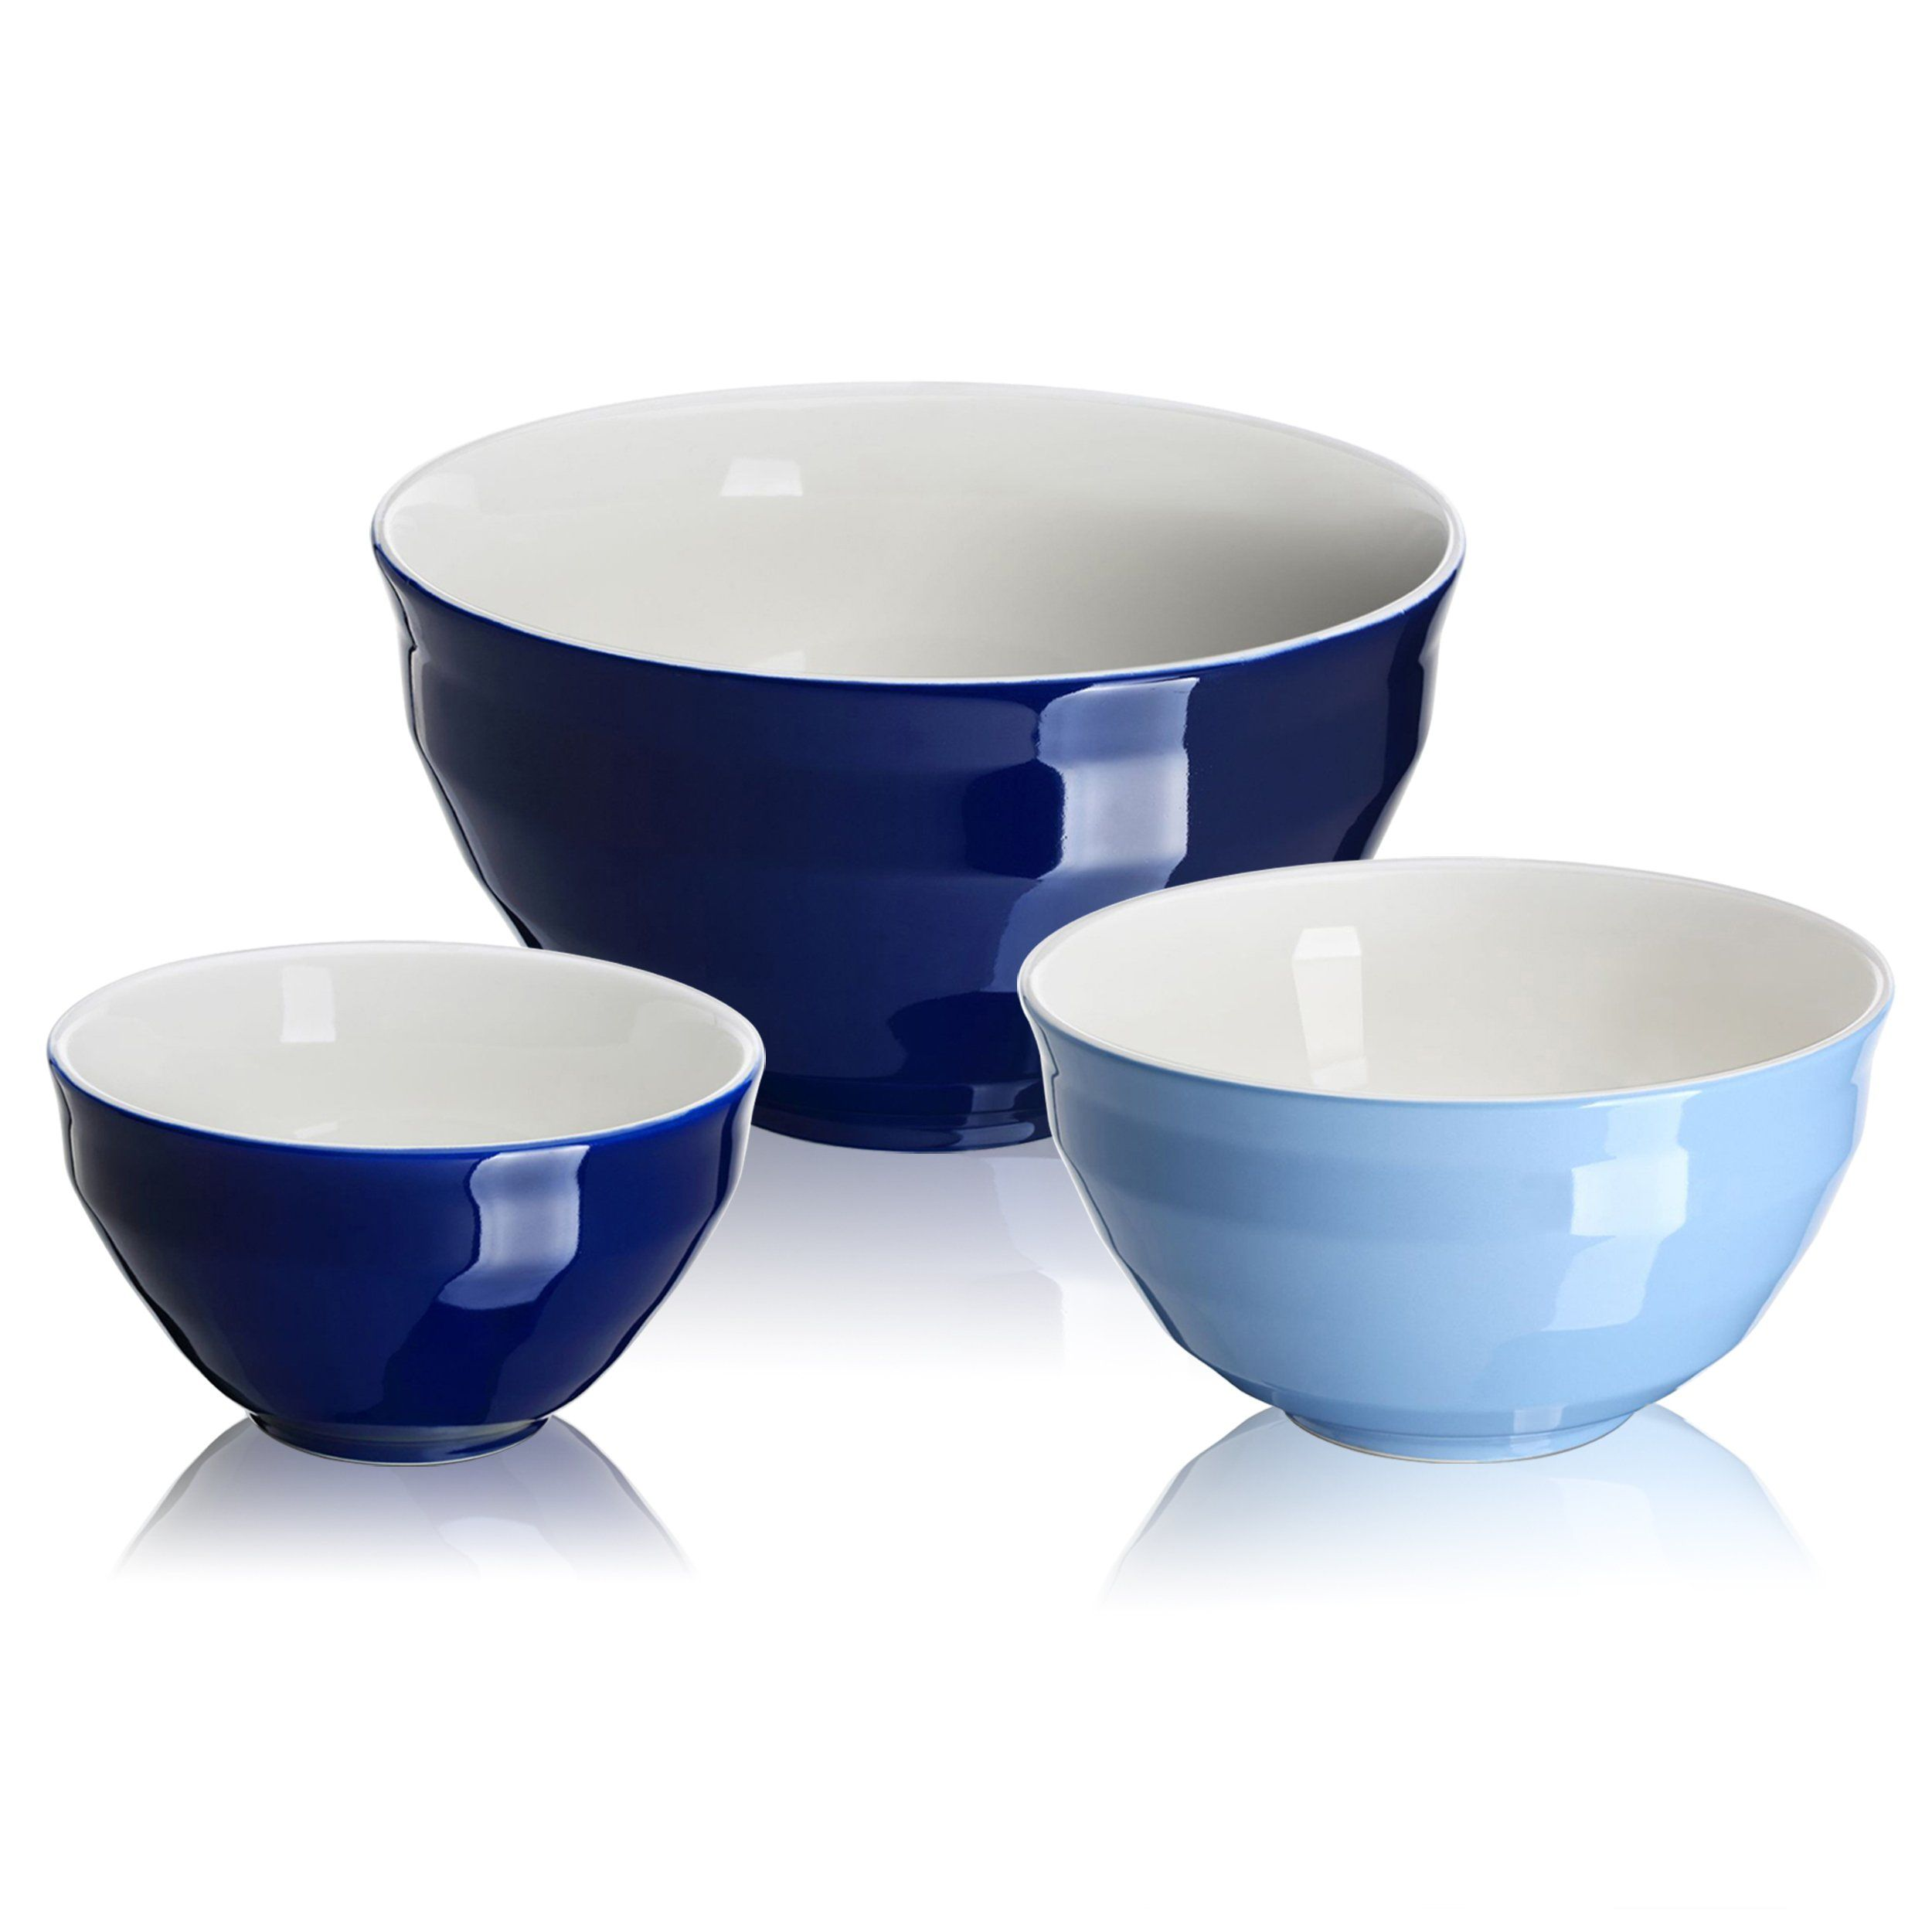 Dowan Ceramic Mixing Bowls Serving Bowl Set Nonslip Soft Curve On The Outside Design Of The Bowls 0 5 Qt 2 Qt 4 25 Qt Ceramic Mixing Bowls Mixing Bowls Bowl